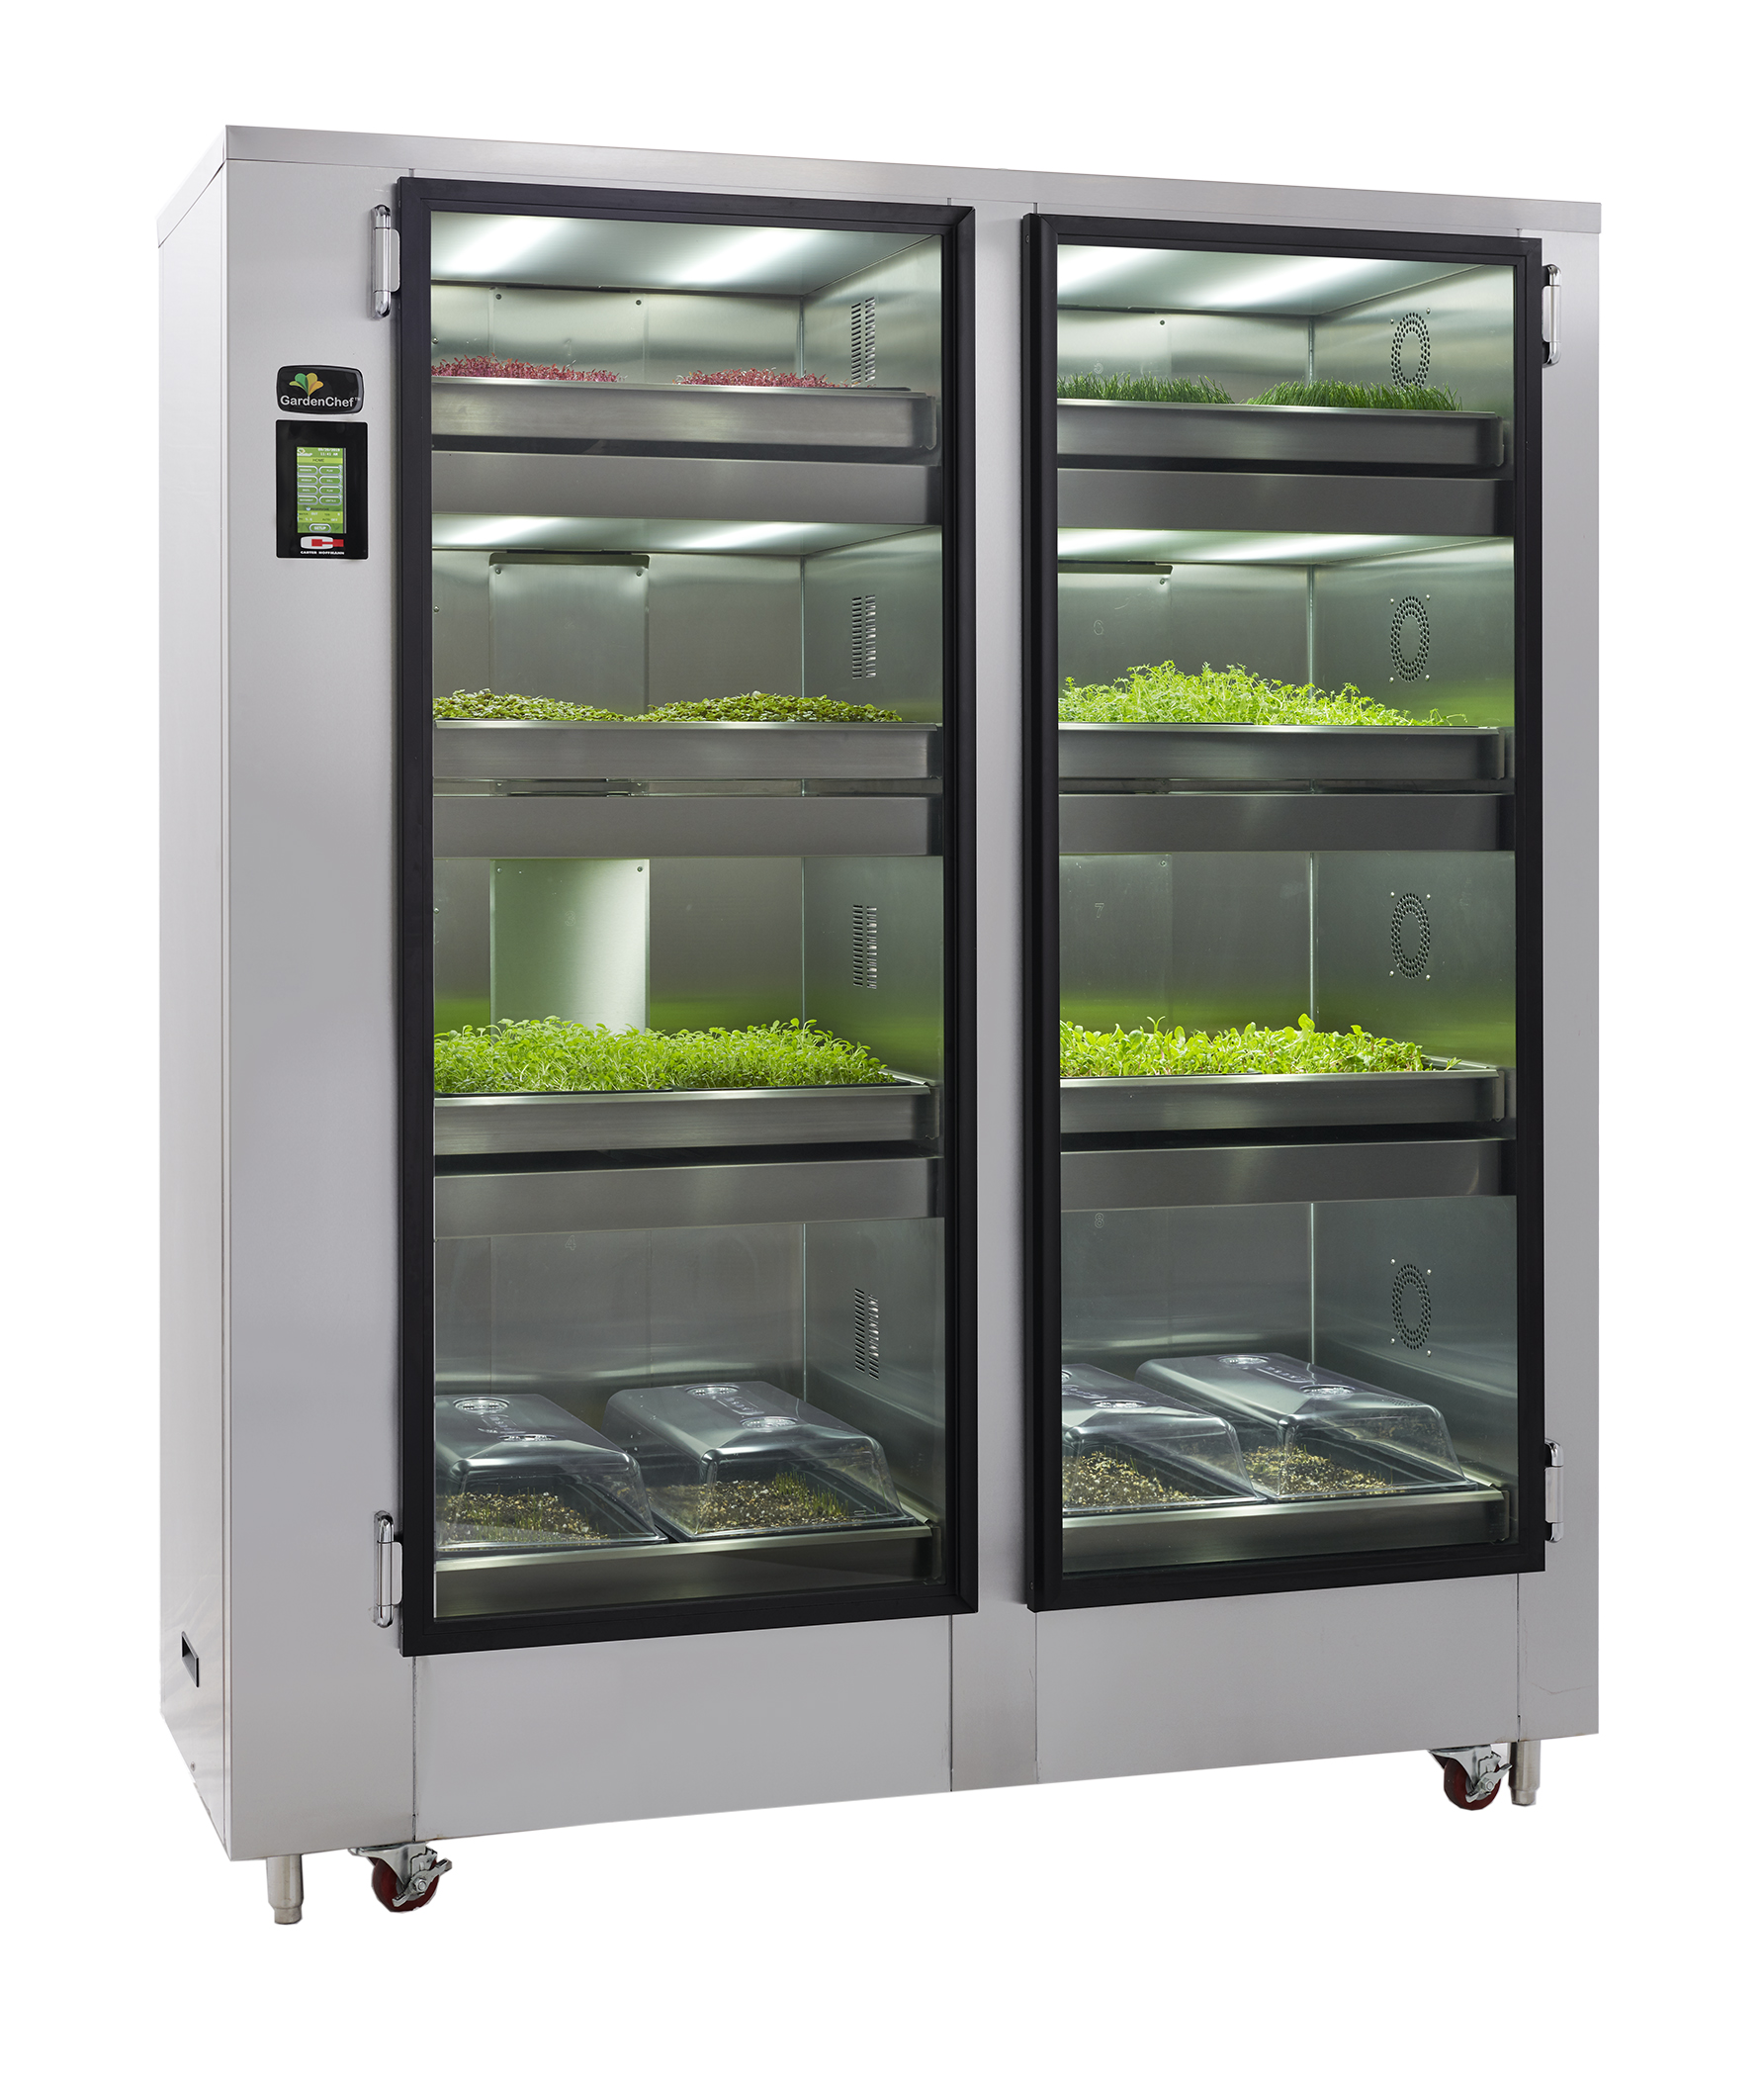 Carter-Hoffmann GC42 cabinet, growing